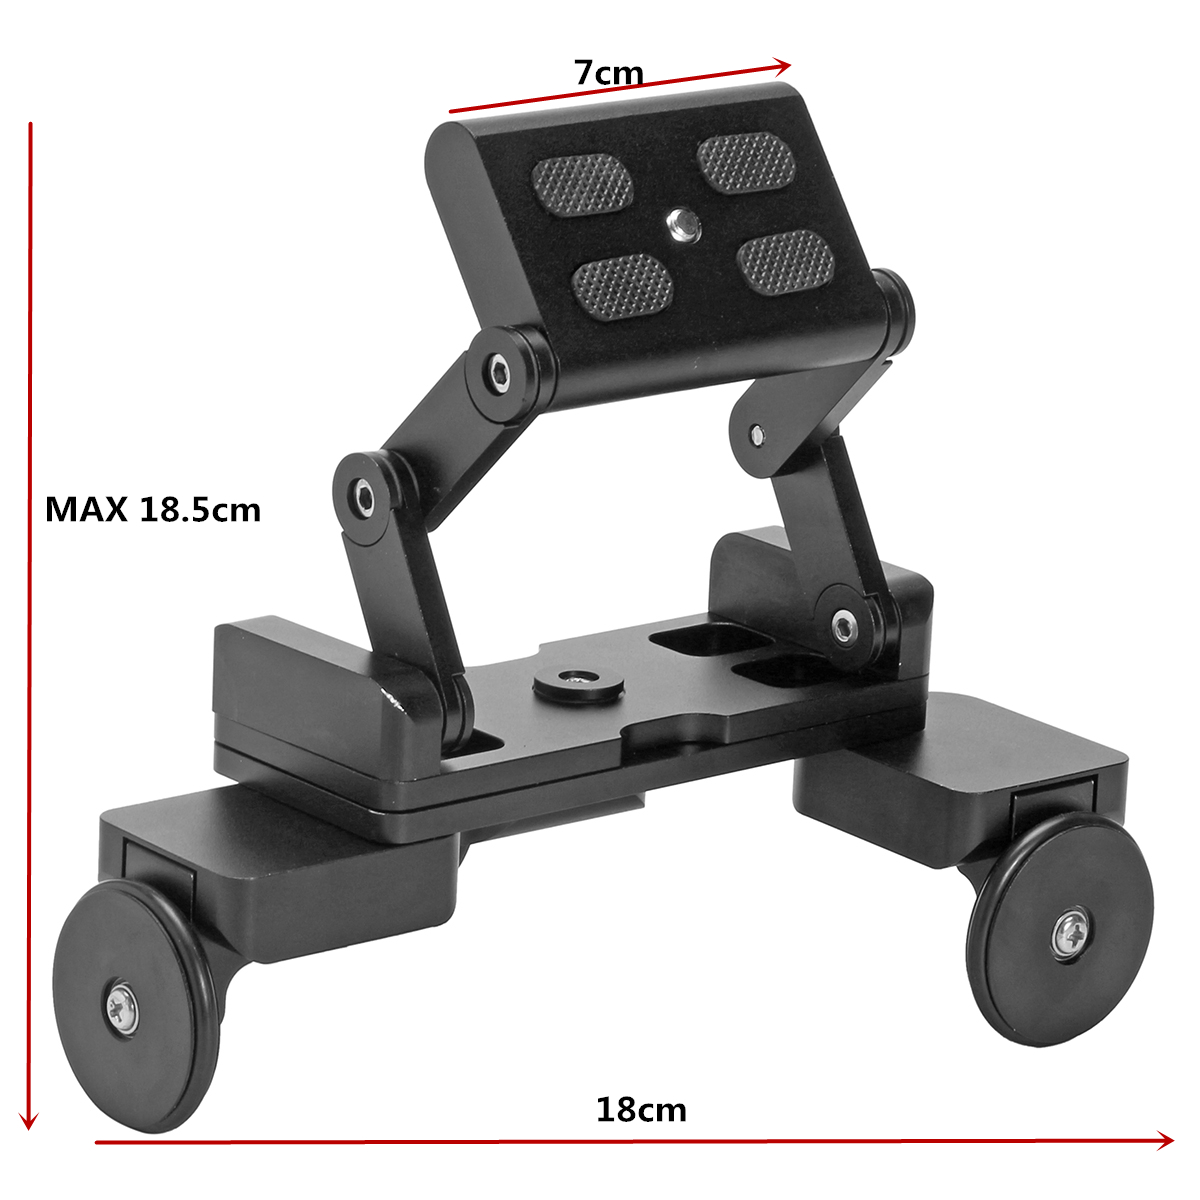 BIKIGHT Foldable Table Dolly Track Video Stabilizer Rolling Slider for Camera Smartphone